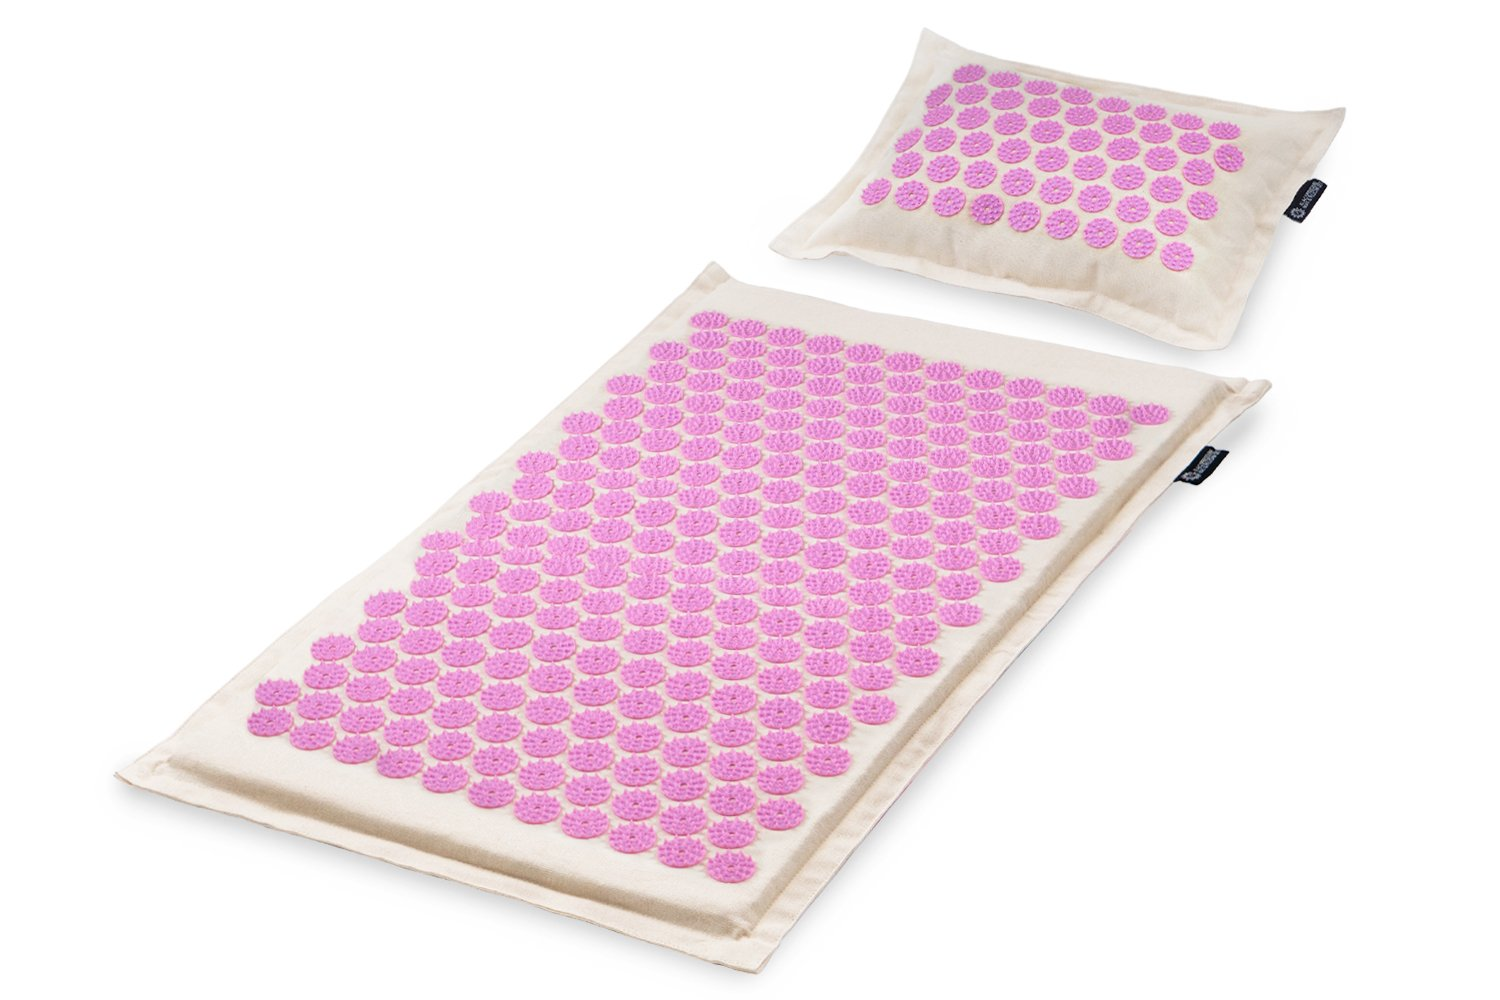 Cherry Blossom Ki Acupressure Mat and Pillow Set